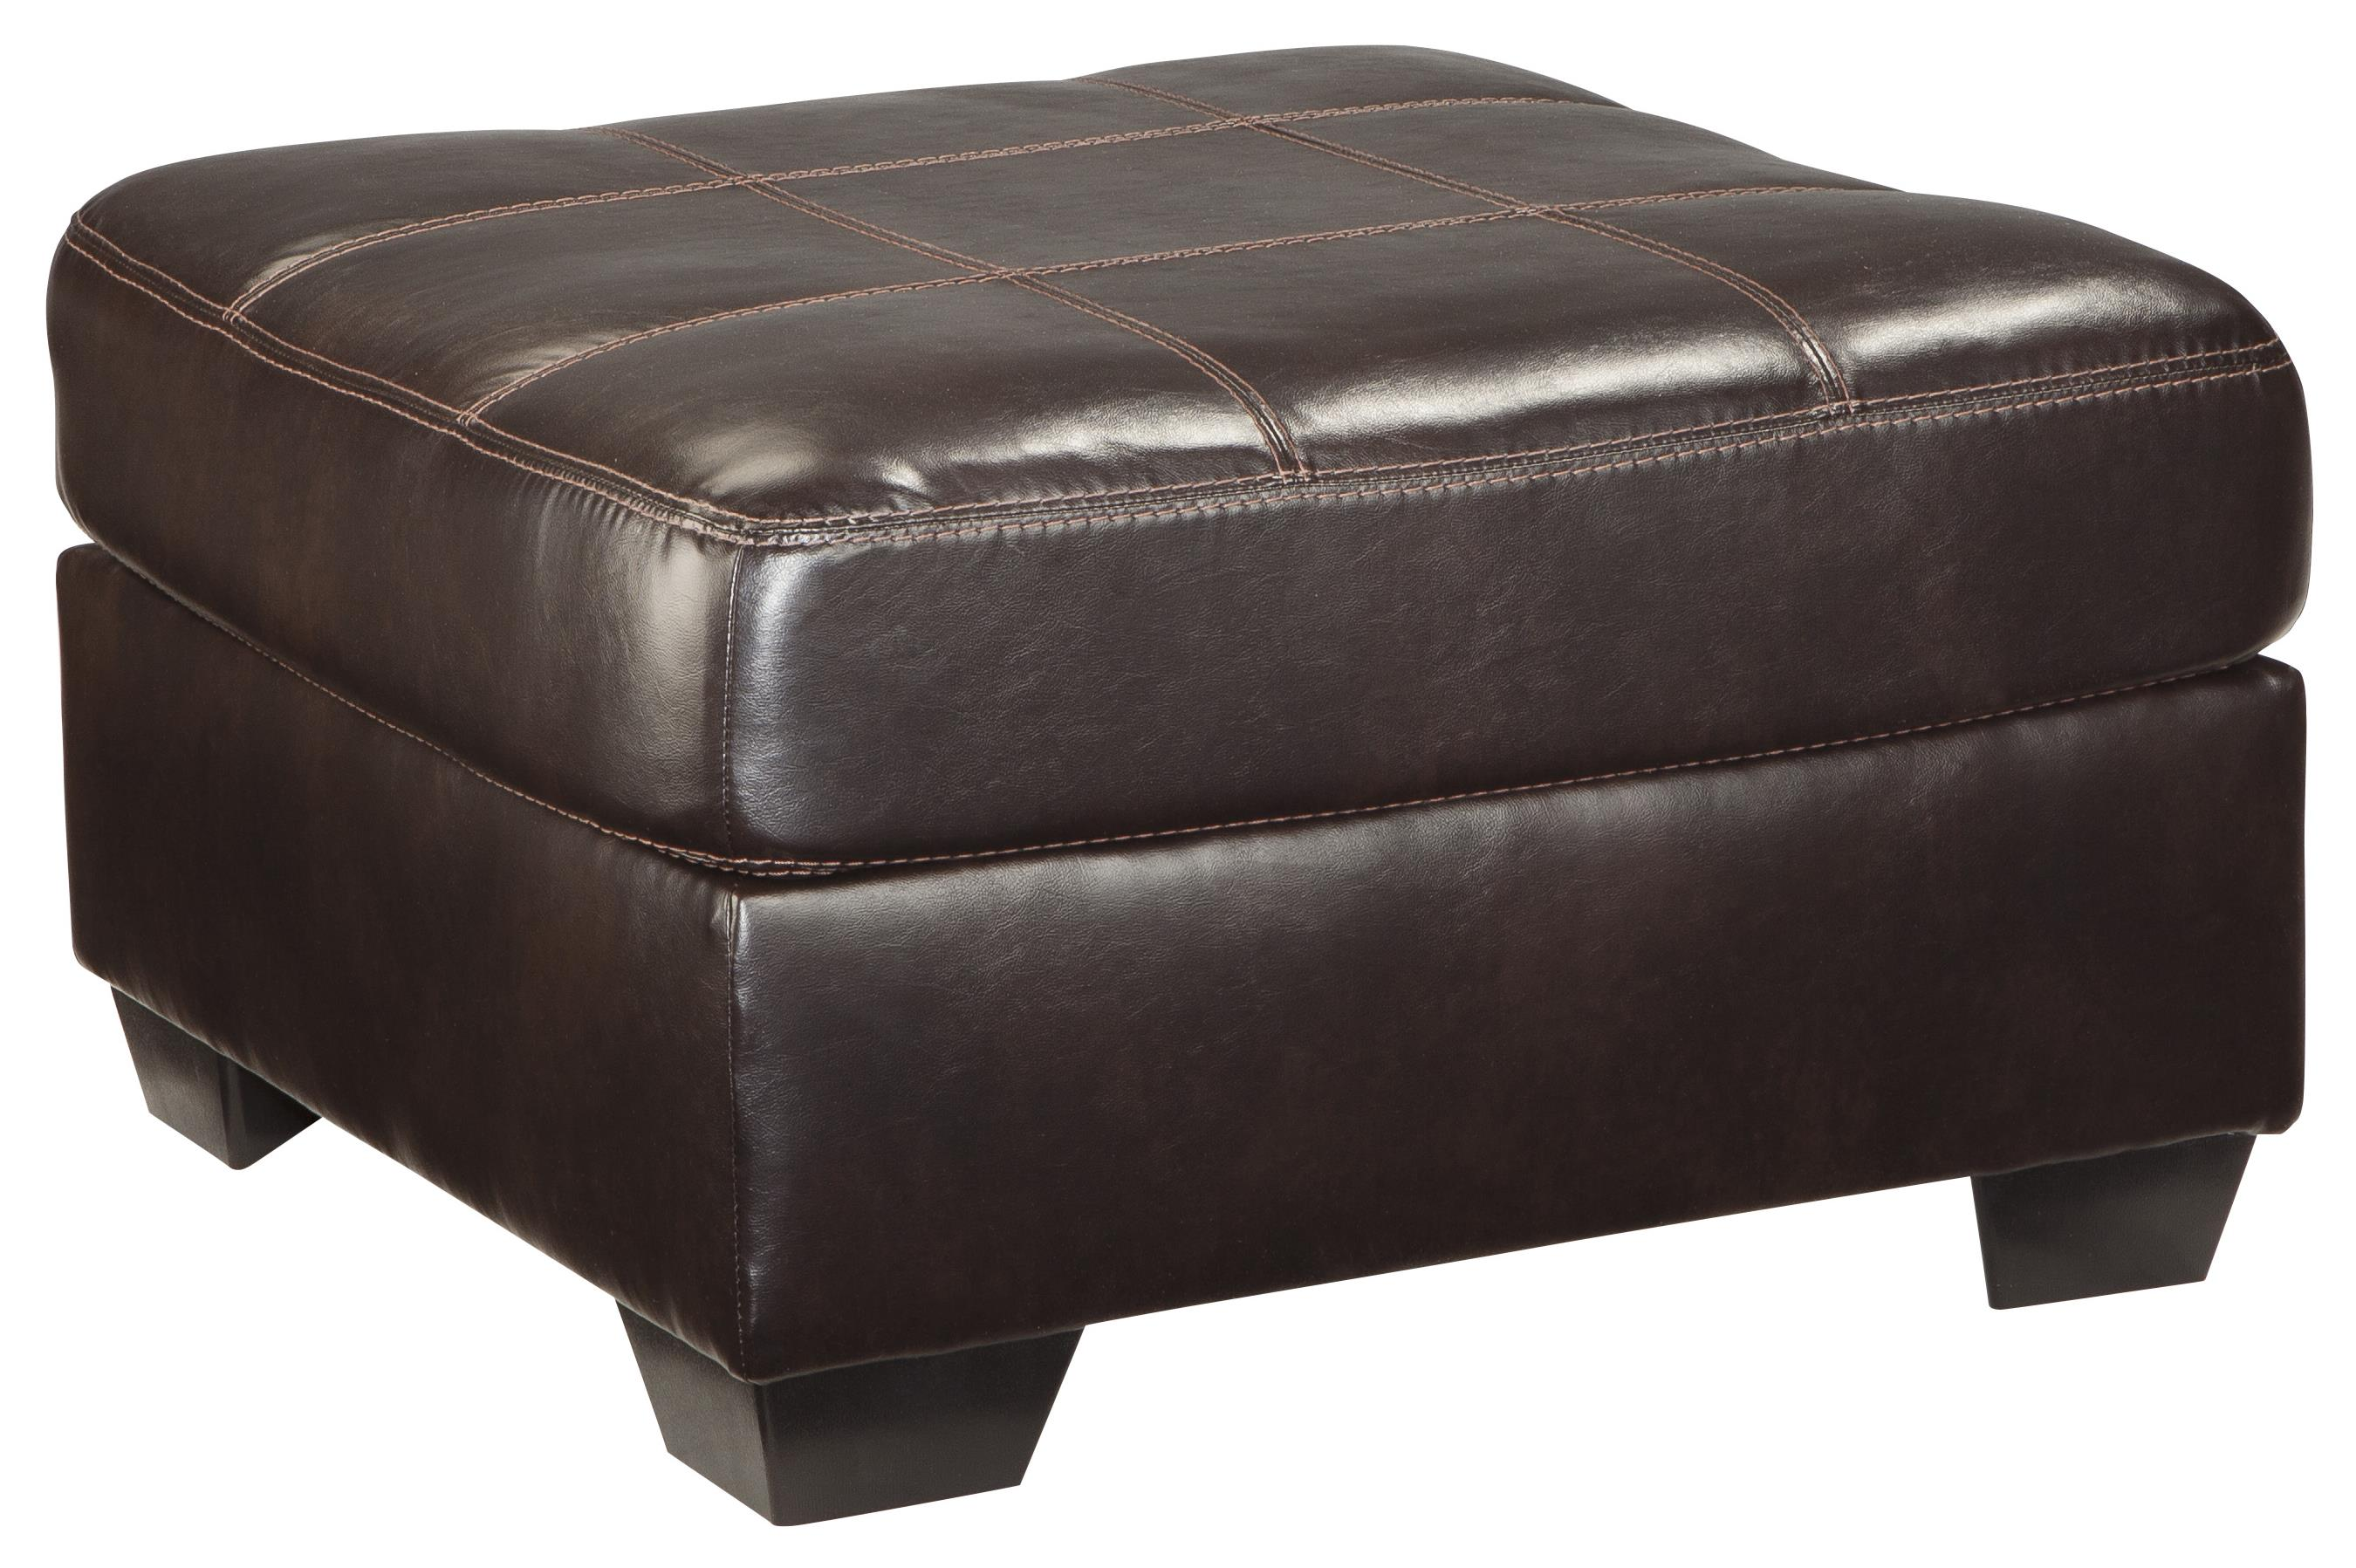 Benchcraft Vanleer Oversized Accent Ottoman - Item Number: 1590008